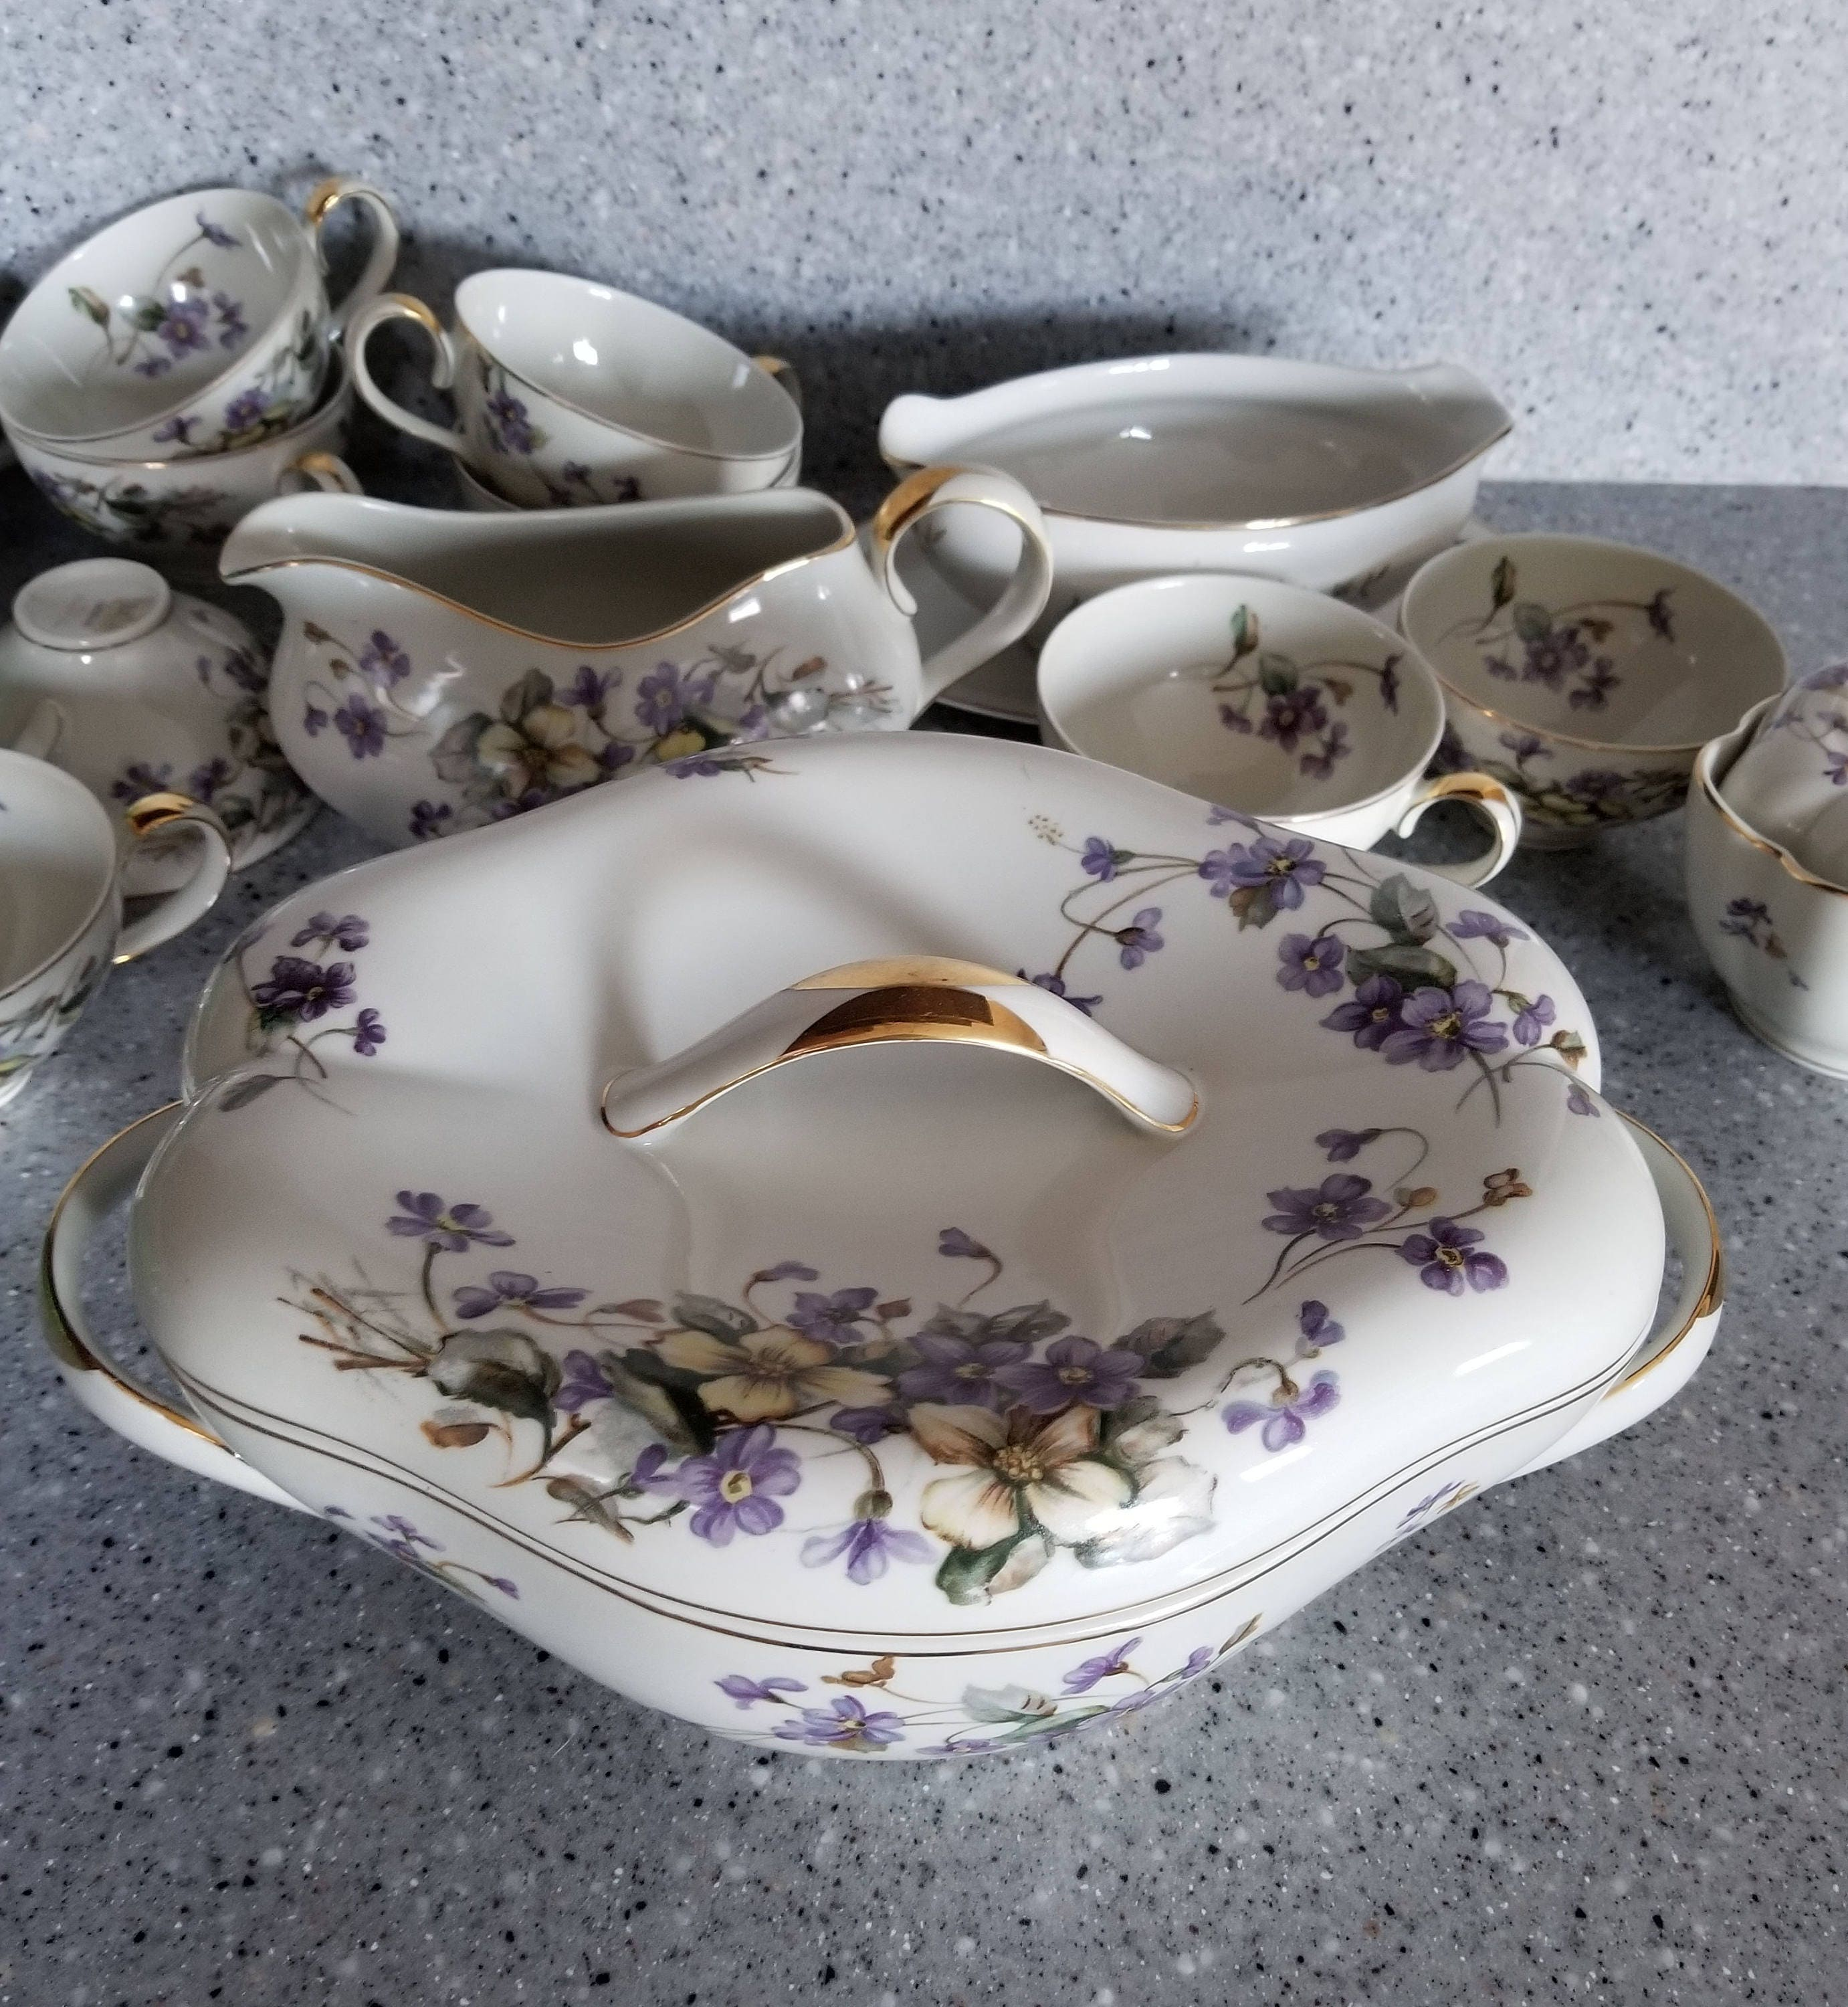 NORLEANS CHINA DISH/Vintage China Dinnerware/Purple Violets/Japan China Dishes : vintage china dinnerware - pezcame.com